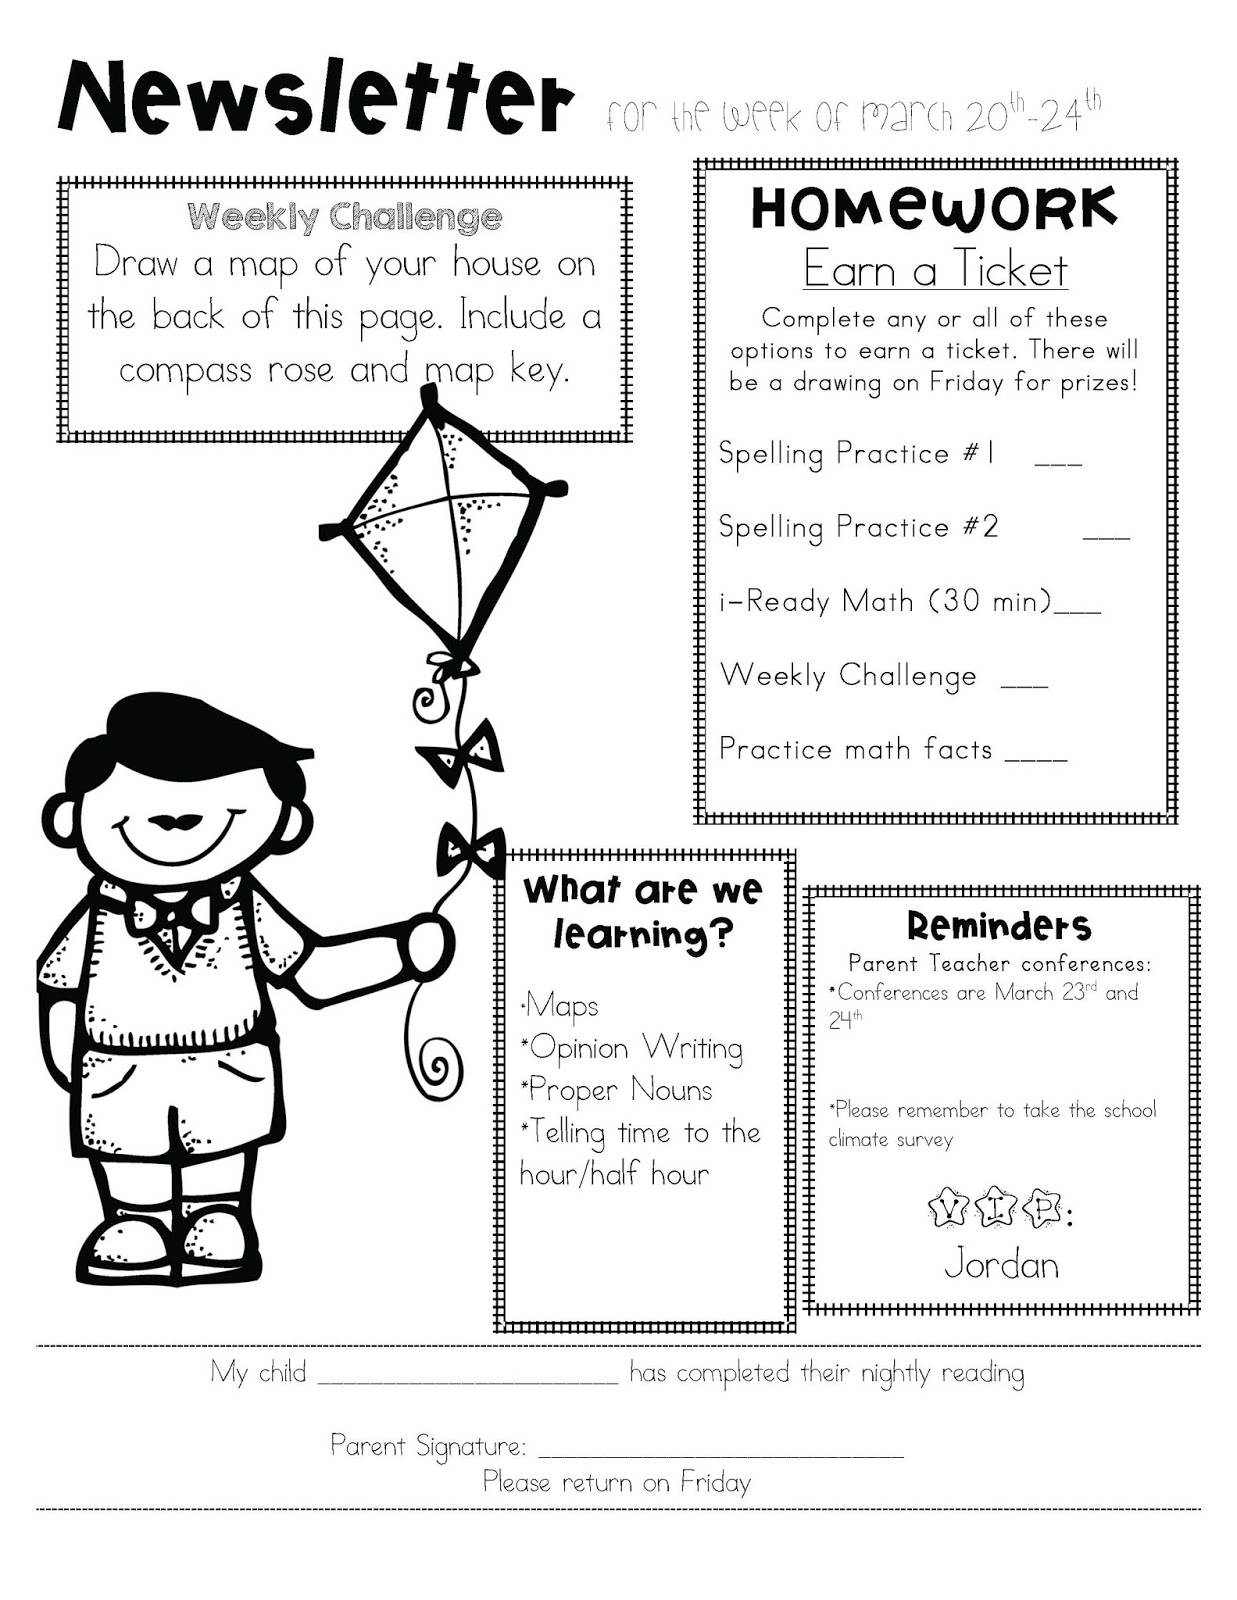 What the Teacher Wants!: Making Homework OPTIONAL Is the Way to Go!